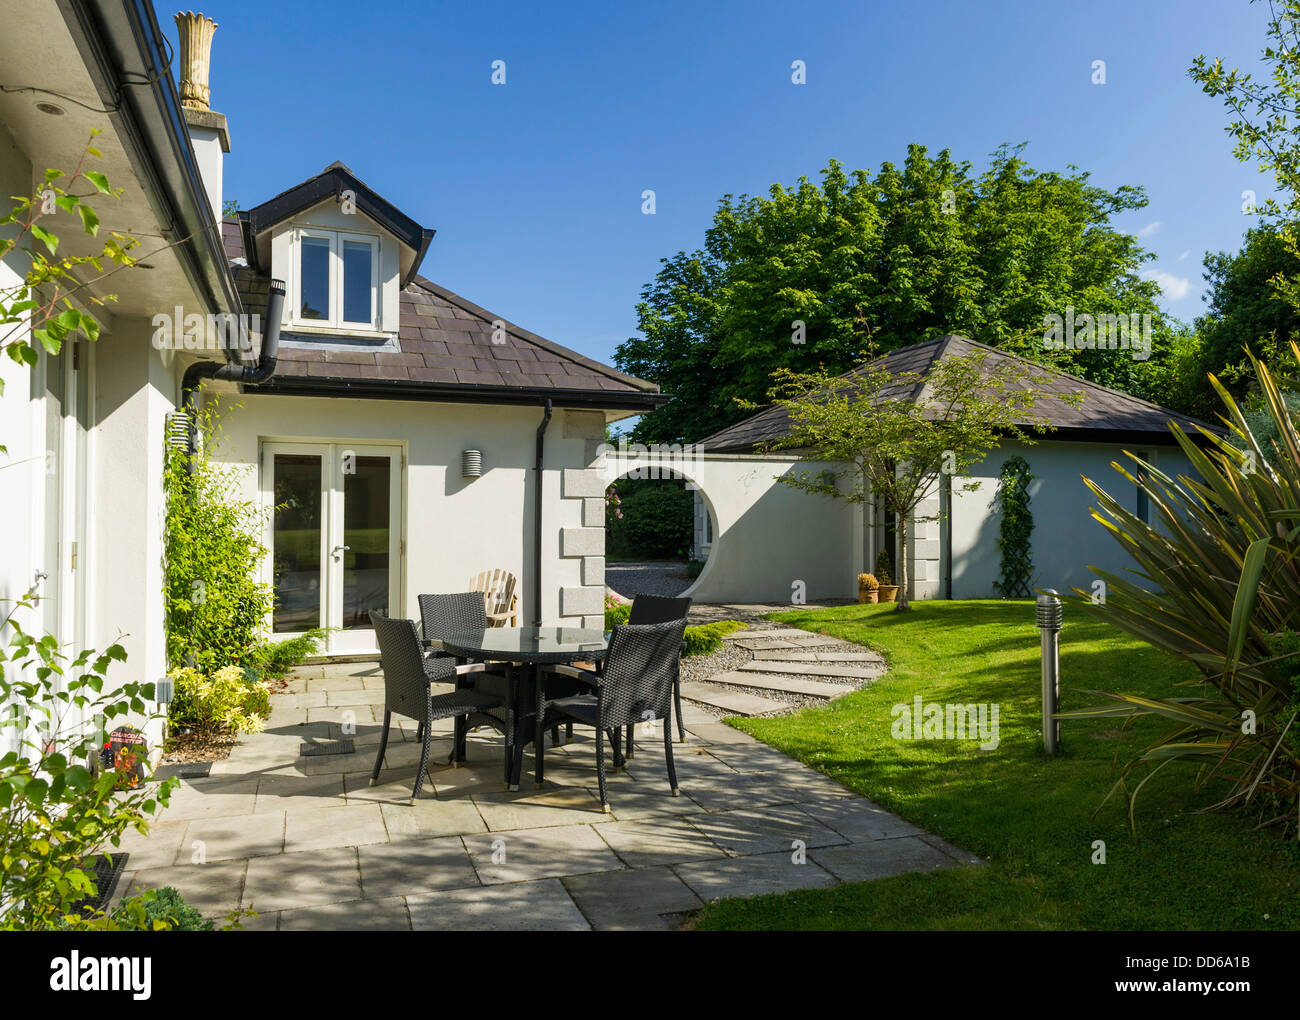 Patio with table and chairs at a residential home in the summer - Stock Image